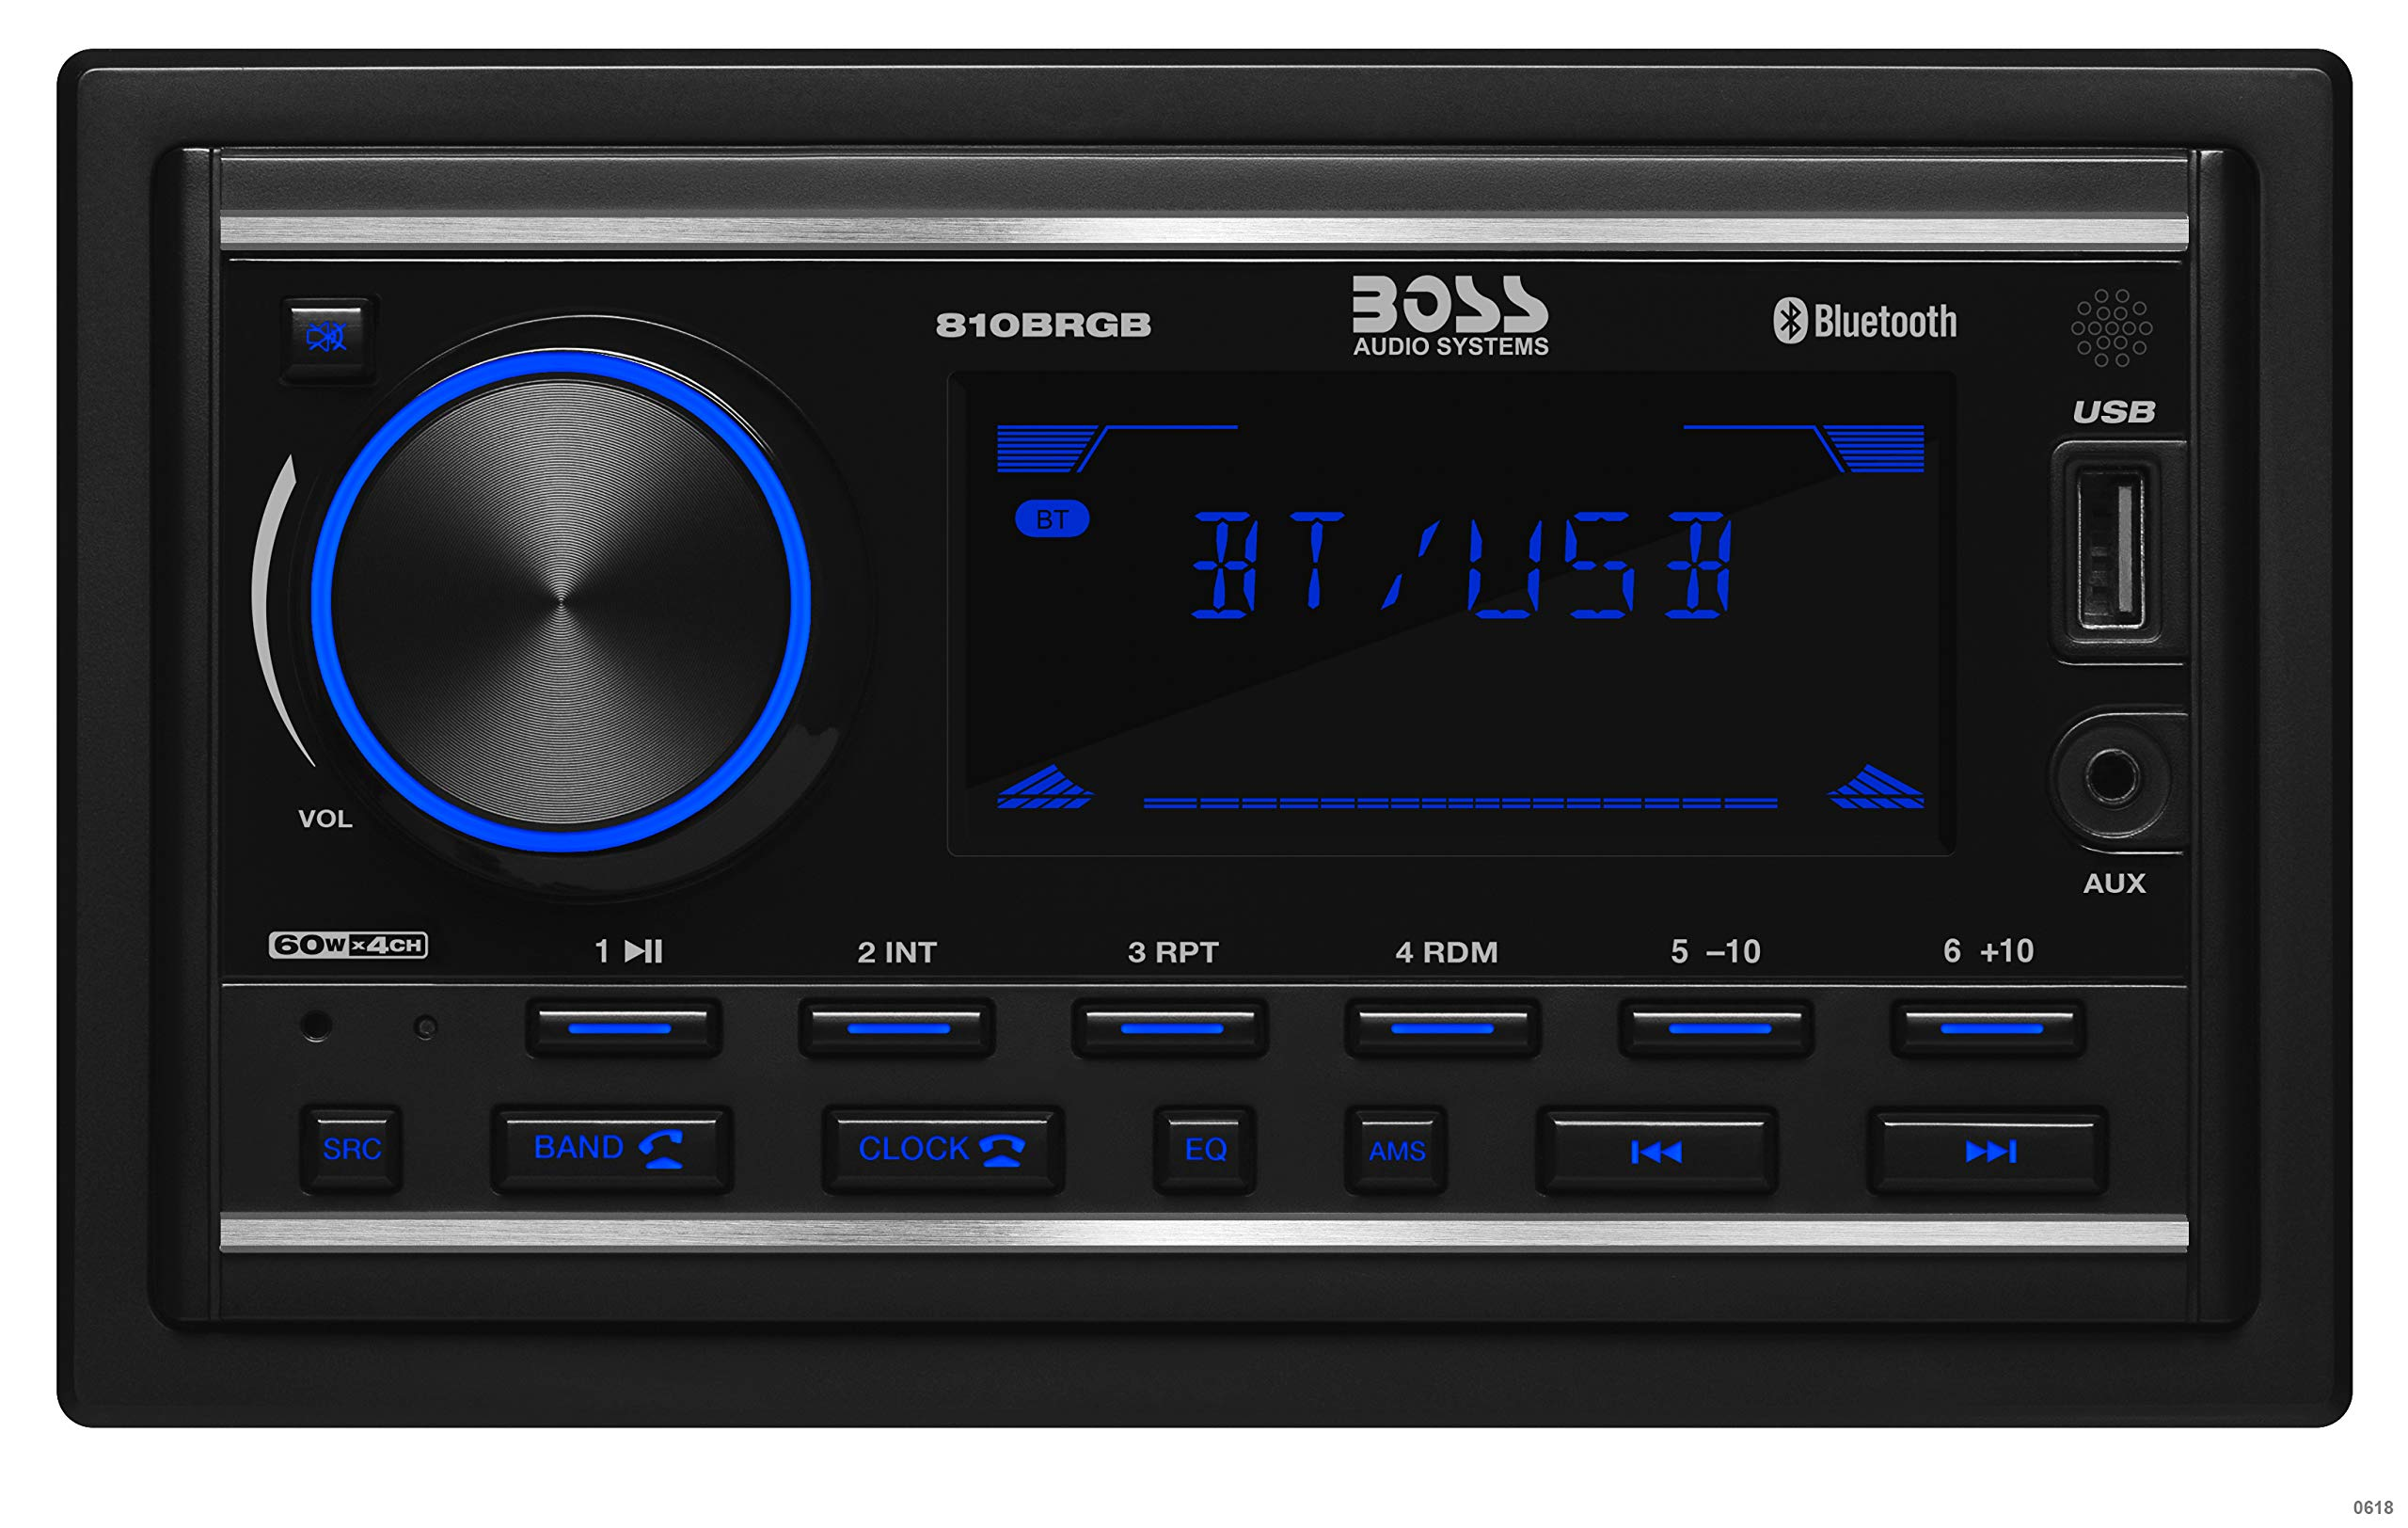 BOSS Audio 810BRGB Multimedia Car Stereo – Double Din, Bluetooth Audio and Calling, MP3 Player, USB Port, AUX Input, AM/FM Radio Receiver, (No CD/DVD), Multi Color Illumination